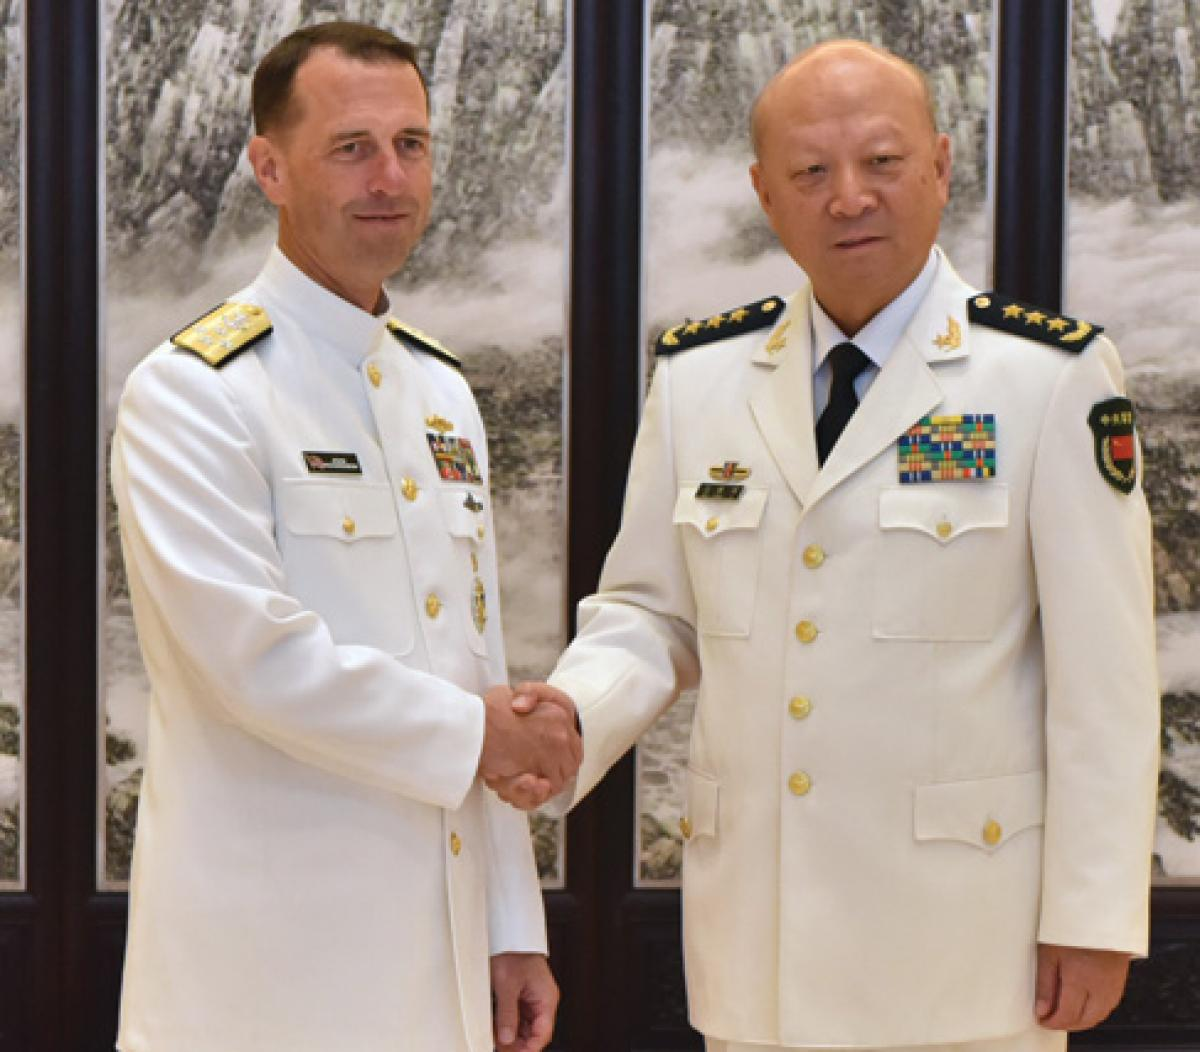 CNO Admiral John Richardson (left) shakes hands with Admiral Wu Shengli, Commander of the PLAN, at Chinese Navy Headquarters in Beijing during a July visit—just five days after the Permanent Court of Arbitration ruled against China in a South China Sea island territorial dispute. What signals do such engagements send to longtime U.S. allies?